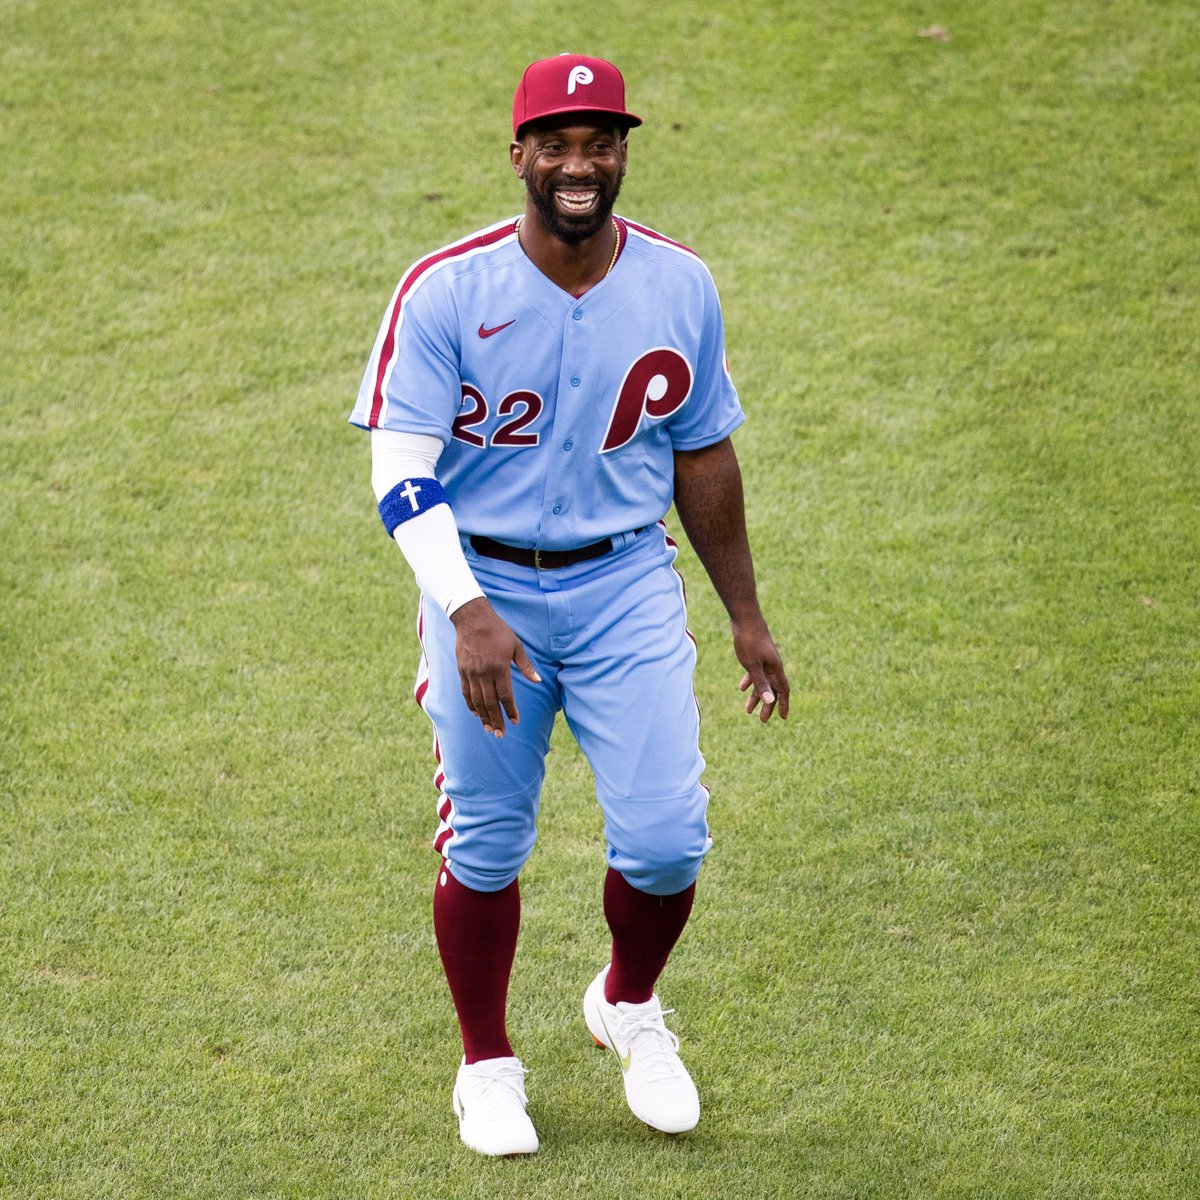 Rate these @Phillies throwbacks on a scale of 1 to 🔥. https://t.co/sF4zKlvhnd